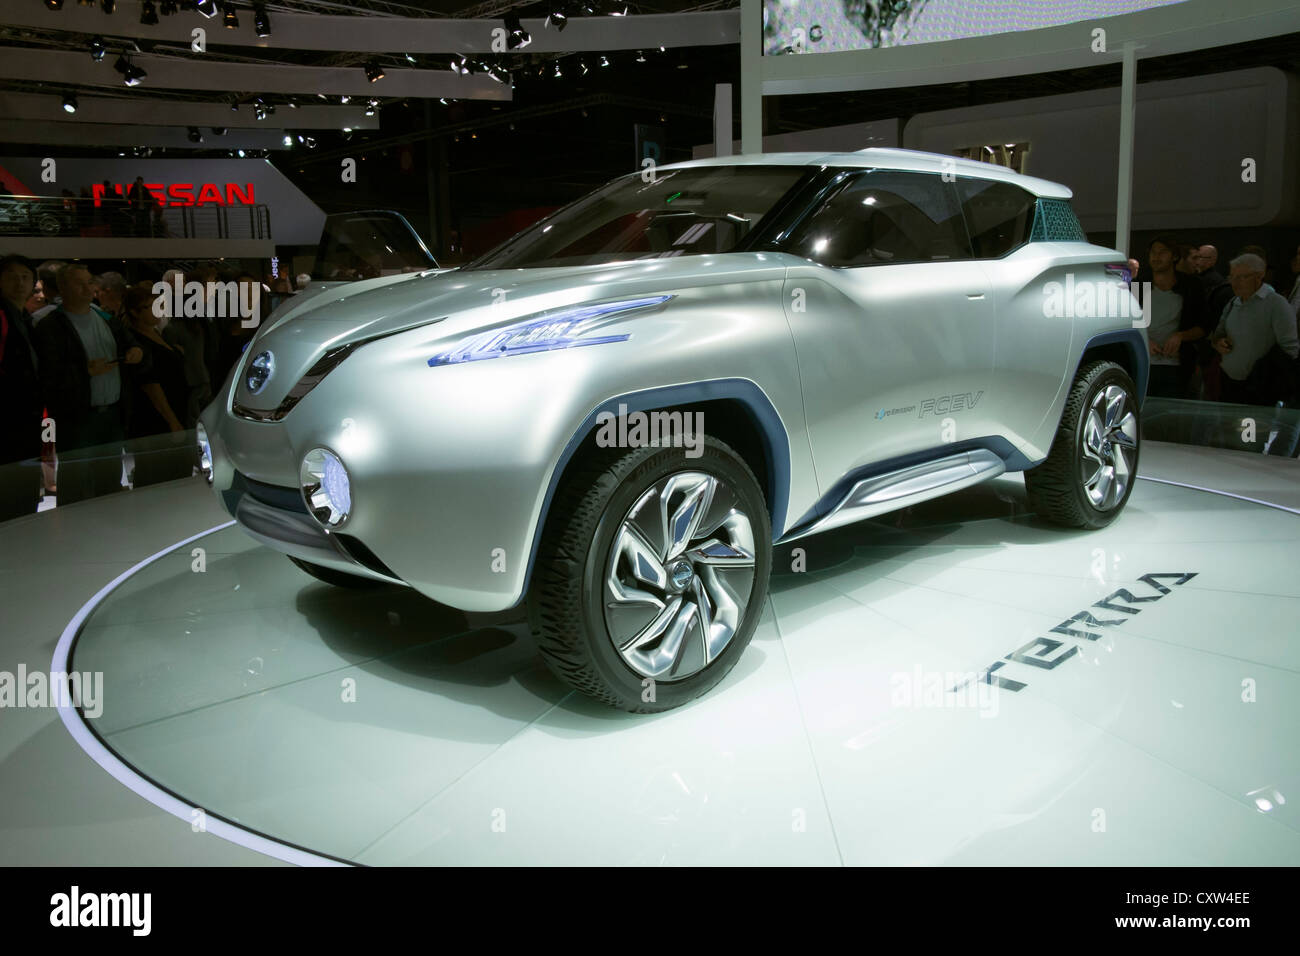 Nissan Terra de células de combustible powered concept car en Paris Motor Show 2012 Imagen De Stock